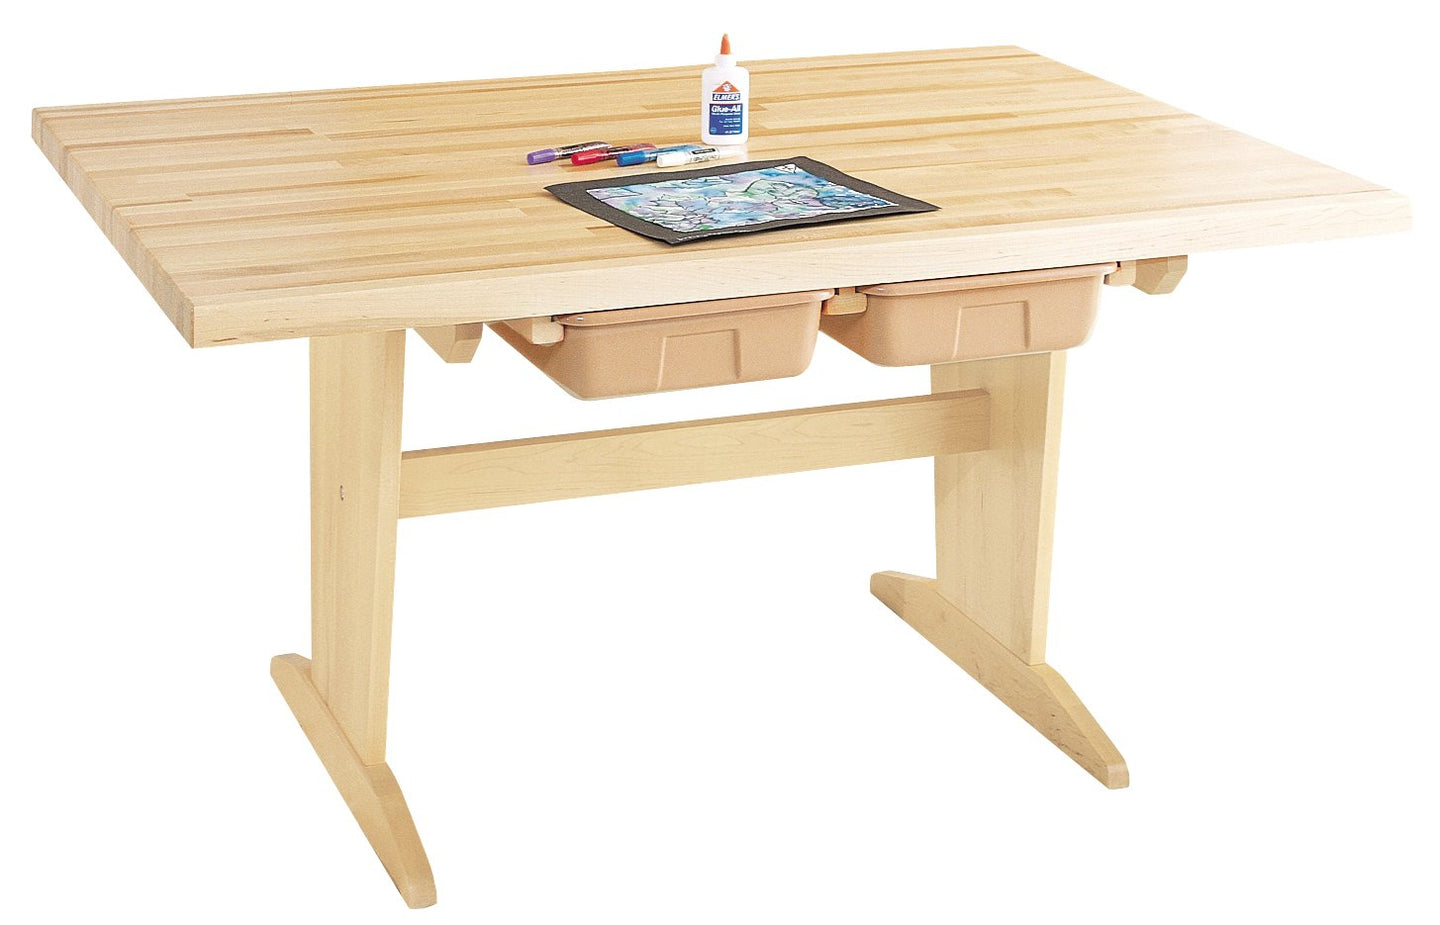 Diversified Woodcraft PT-60M Solid Maple Wood Art/Planning Table